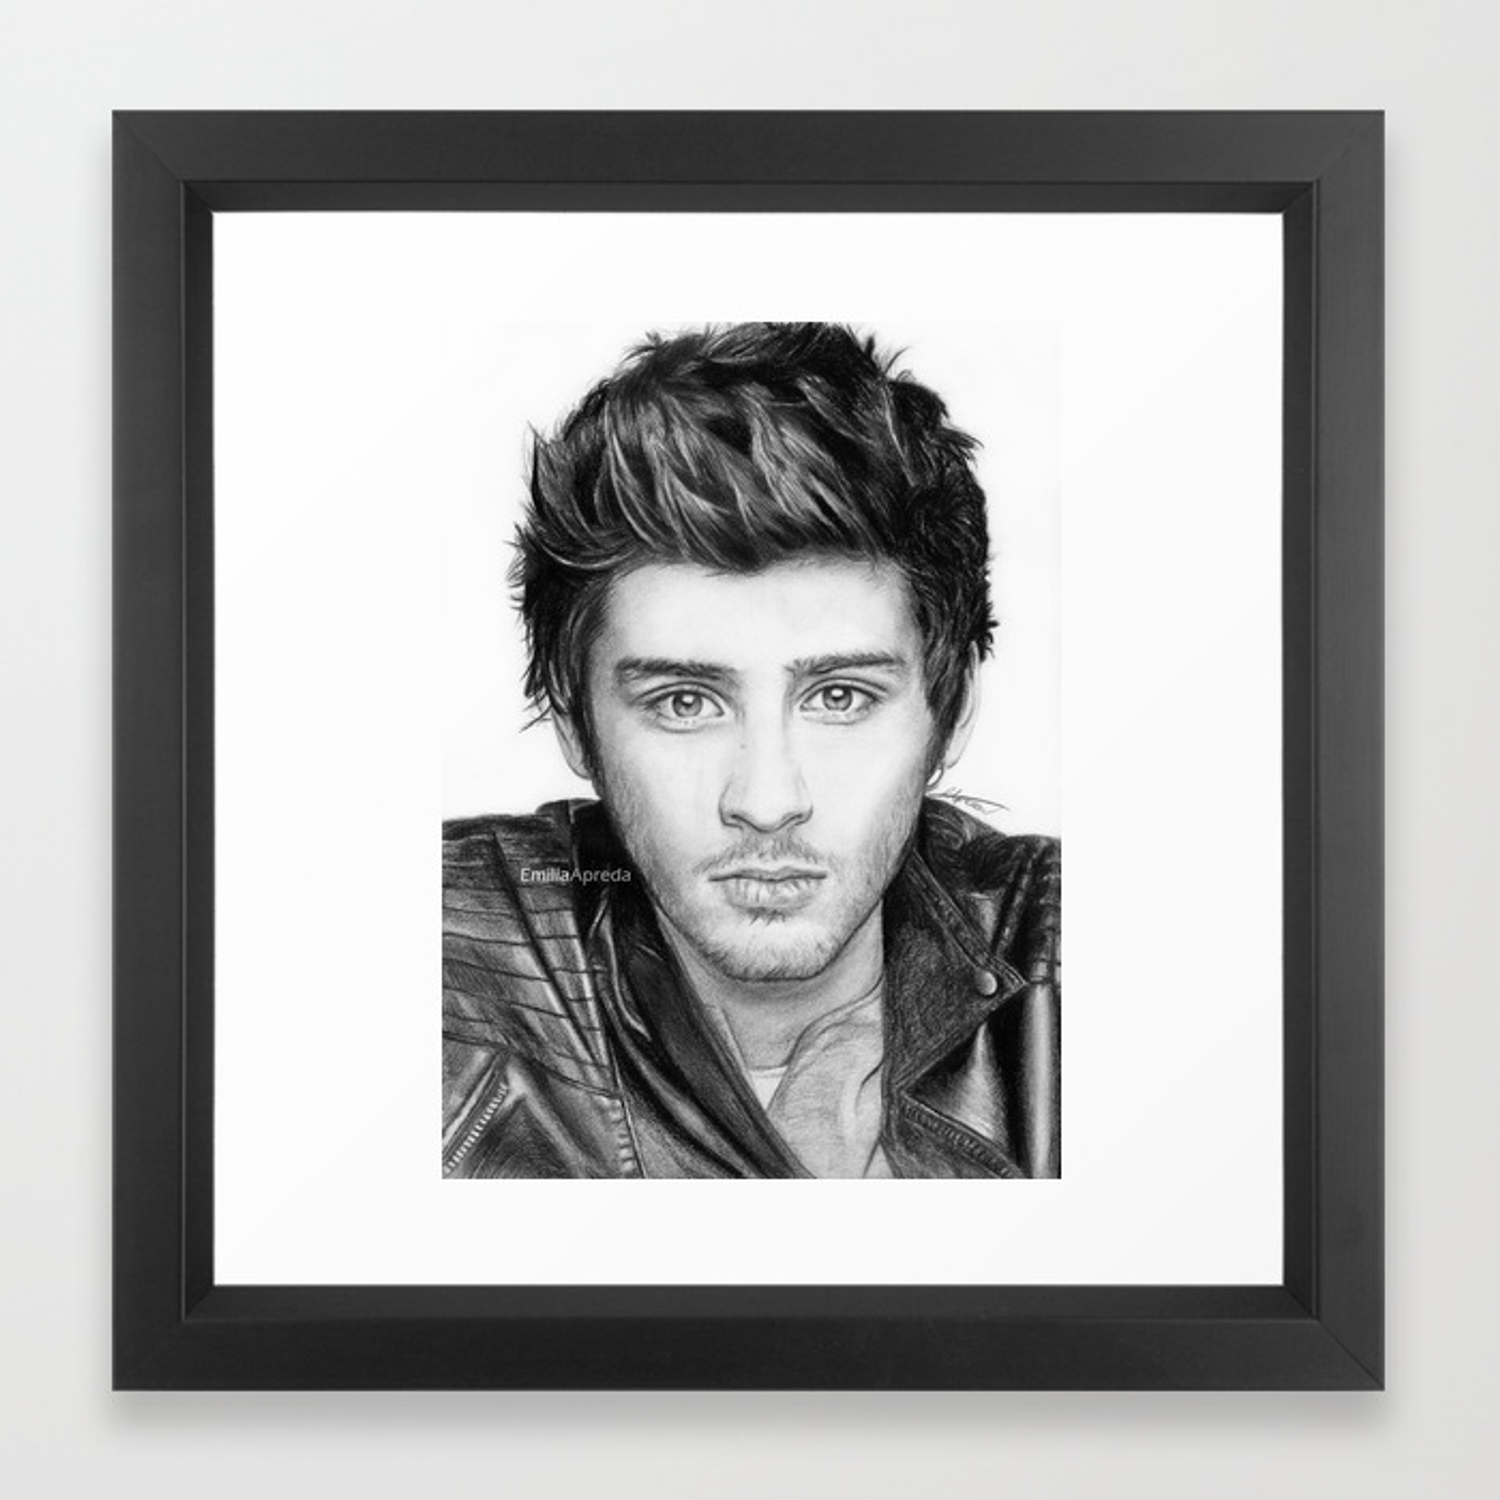 Zayn malik drawing framed art print by emiliaapreda society6